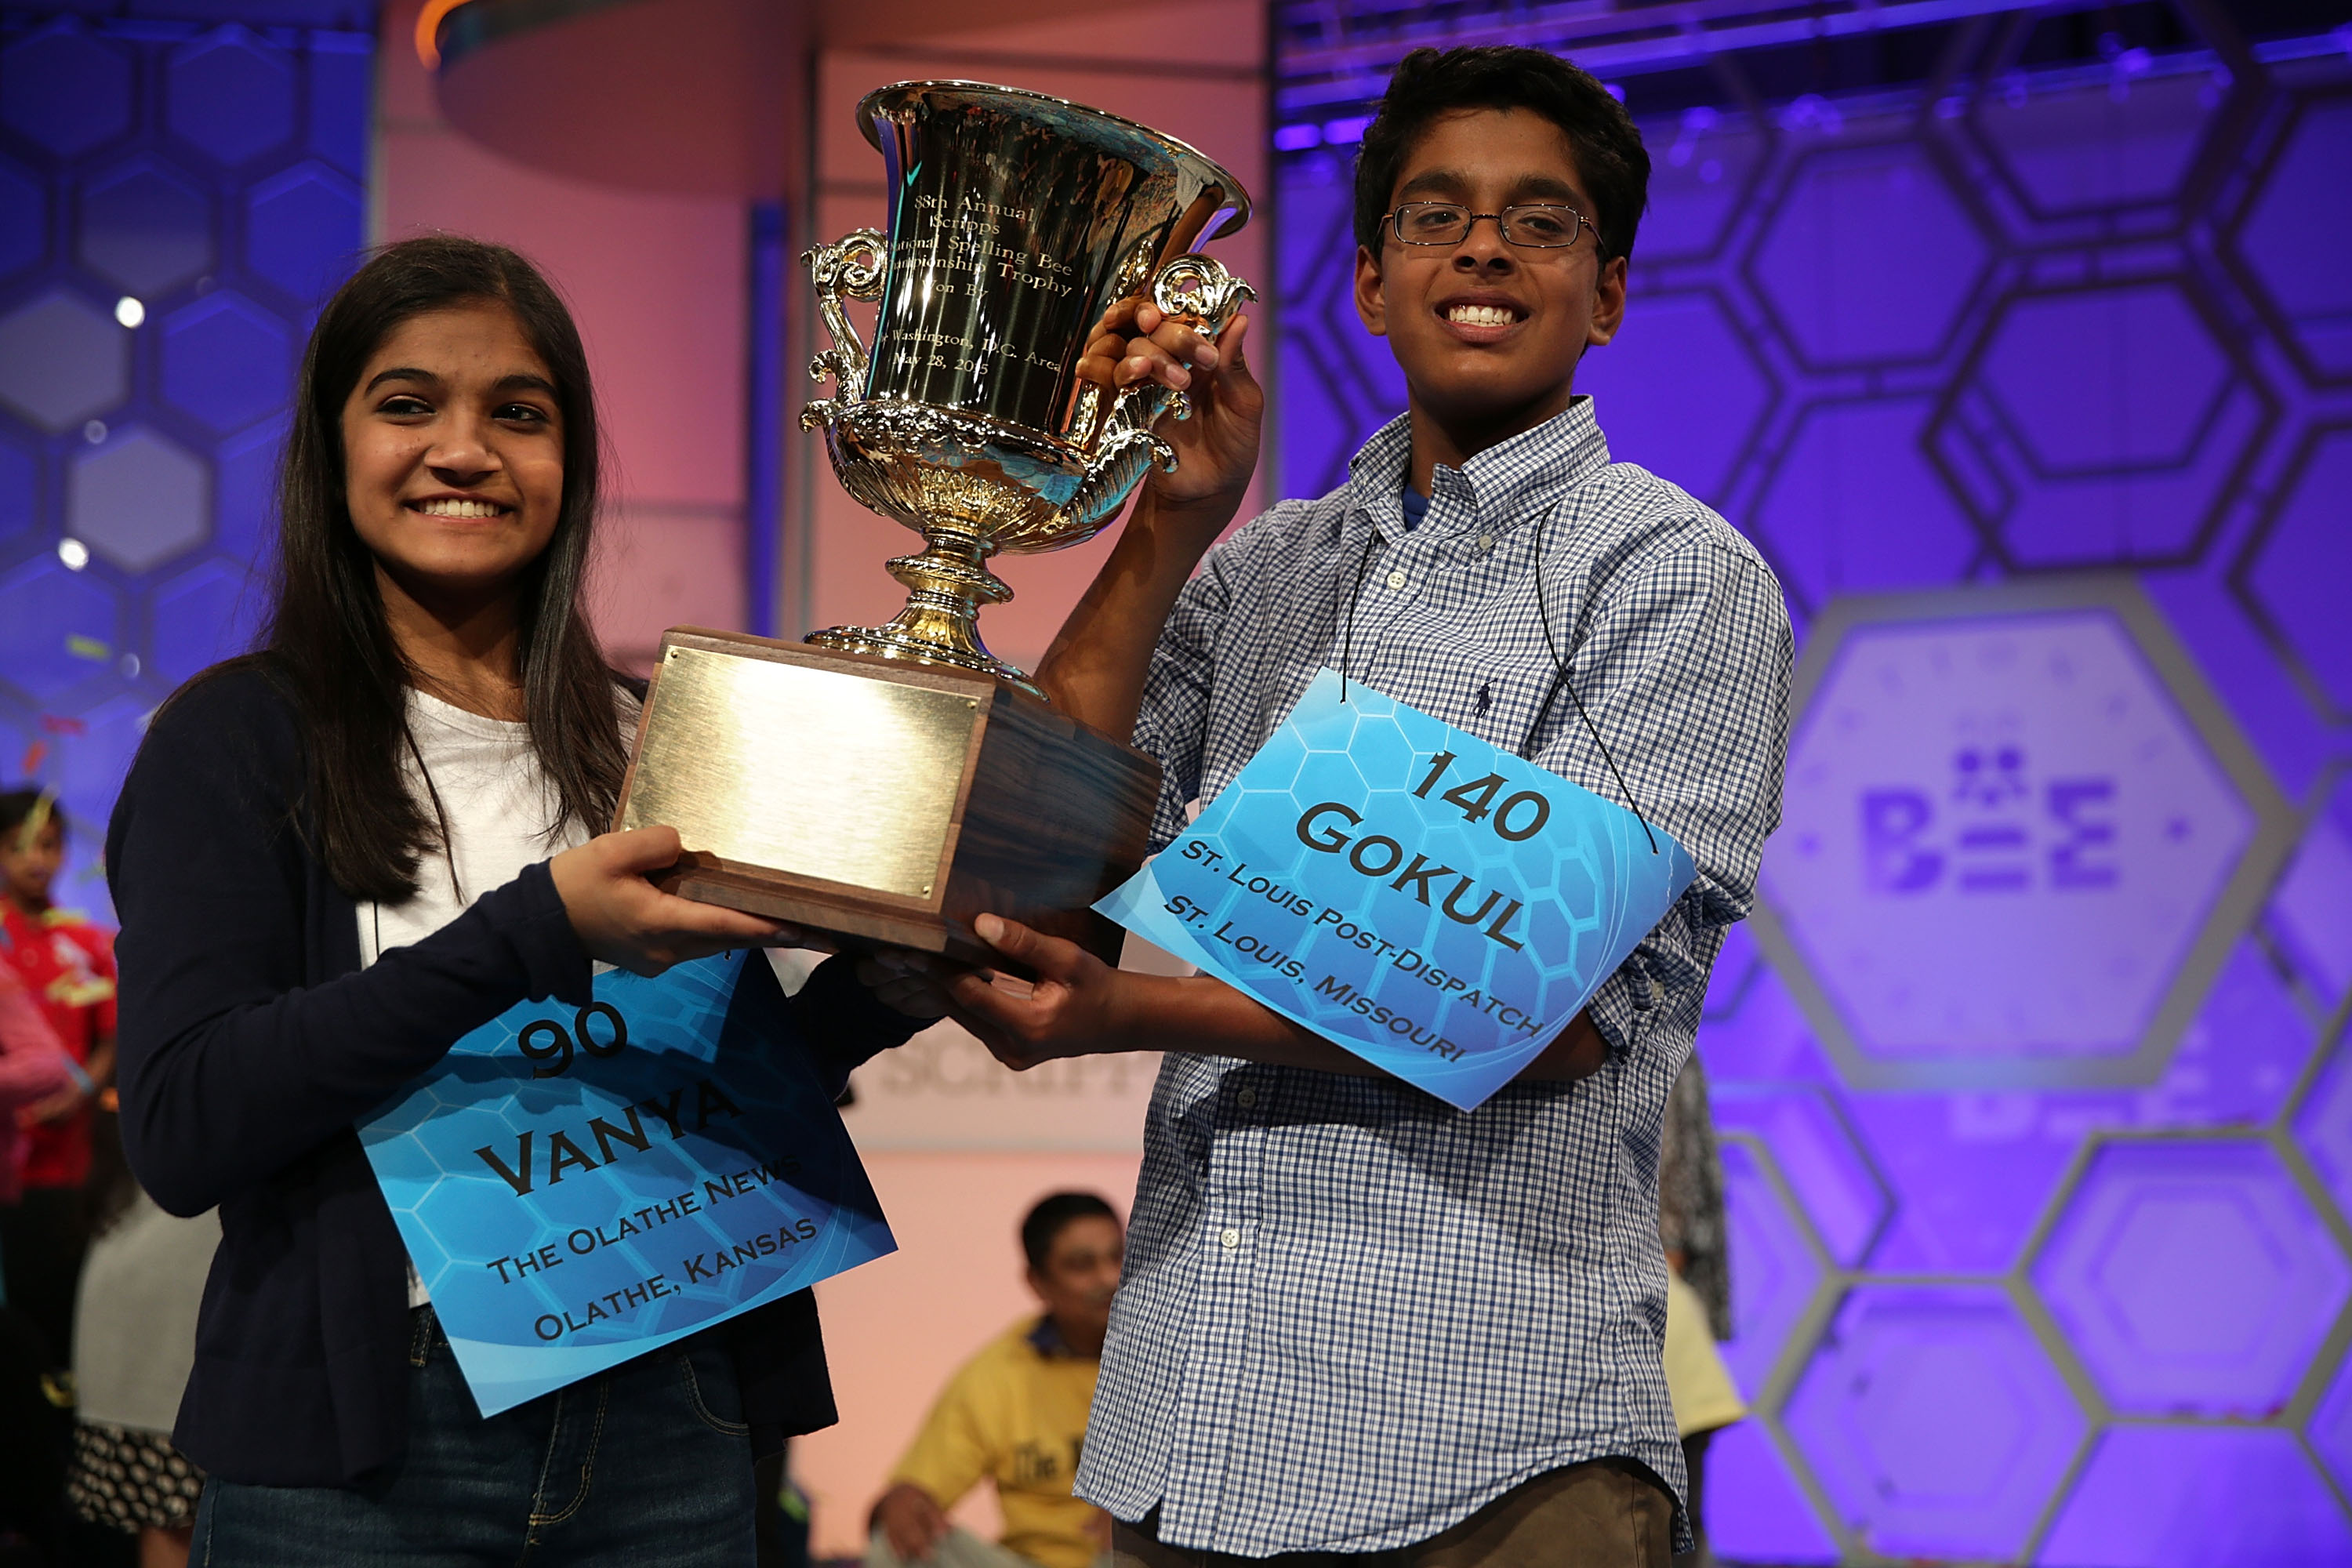 What Was The Winning Word In The National Spelling